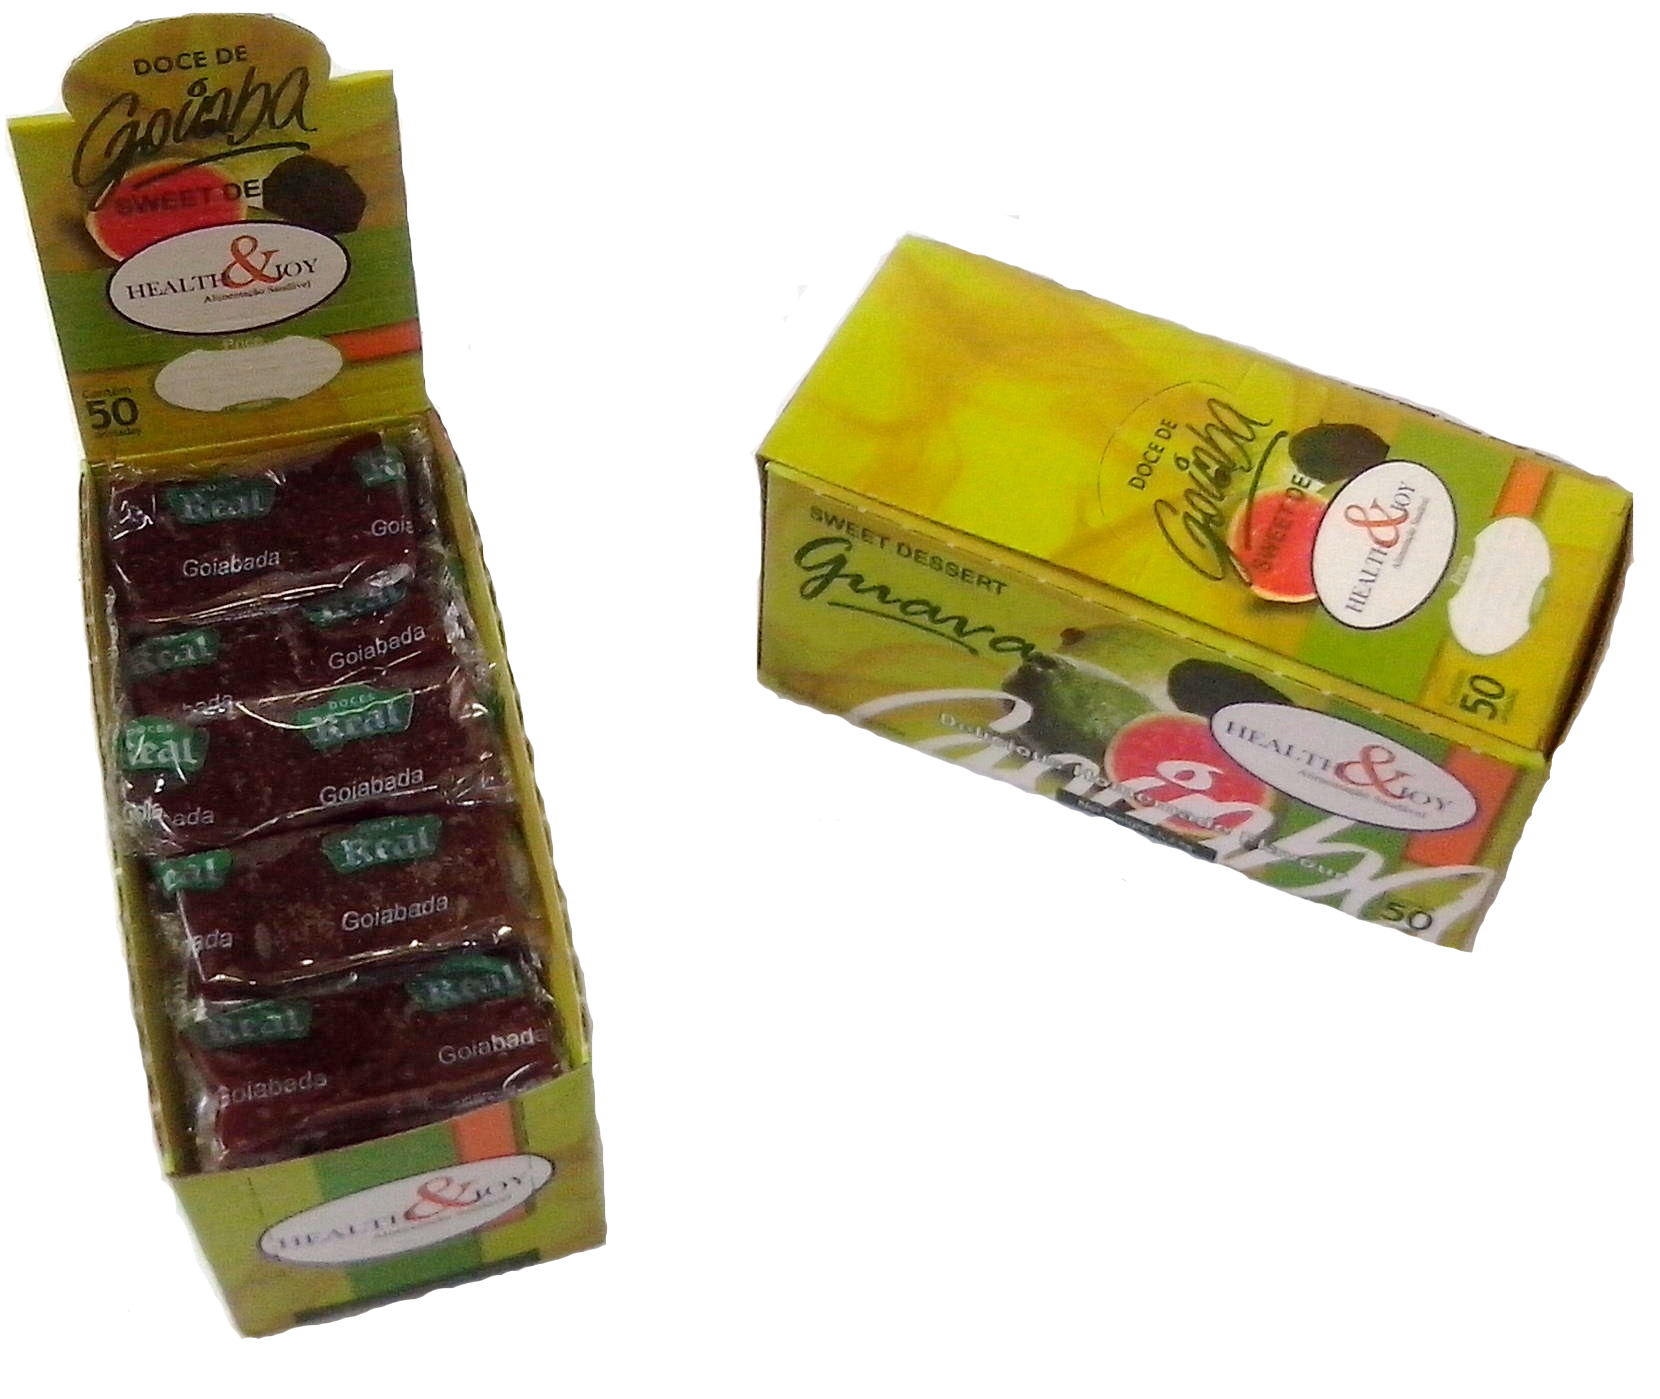 Guava Healt & Joy bars